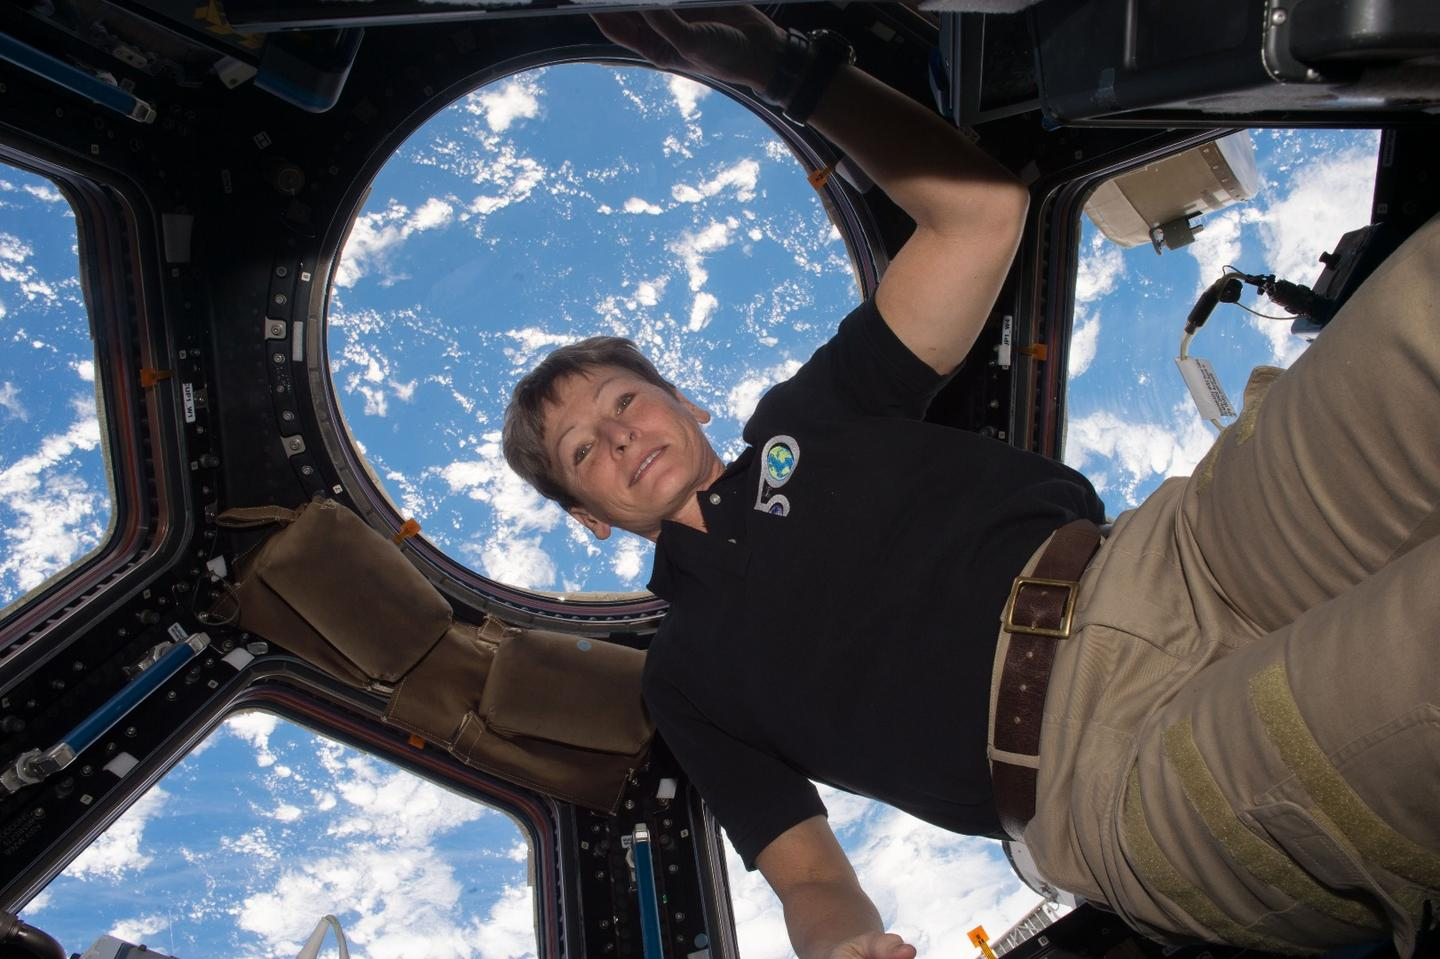 U.S. astronaut Peggy Whitson imaged in the Cupola Observational Module of the International Space Station